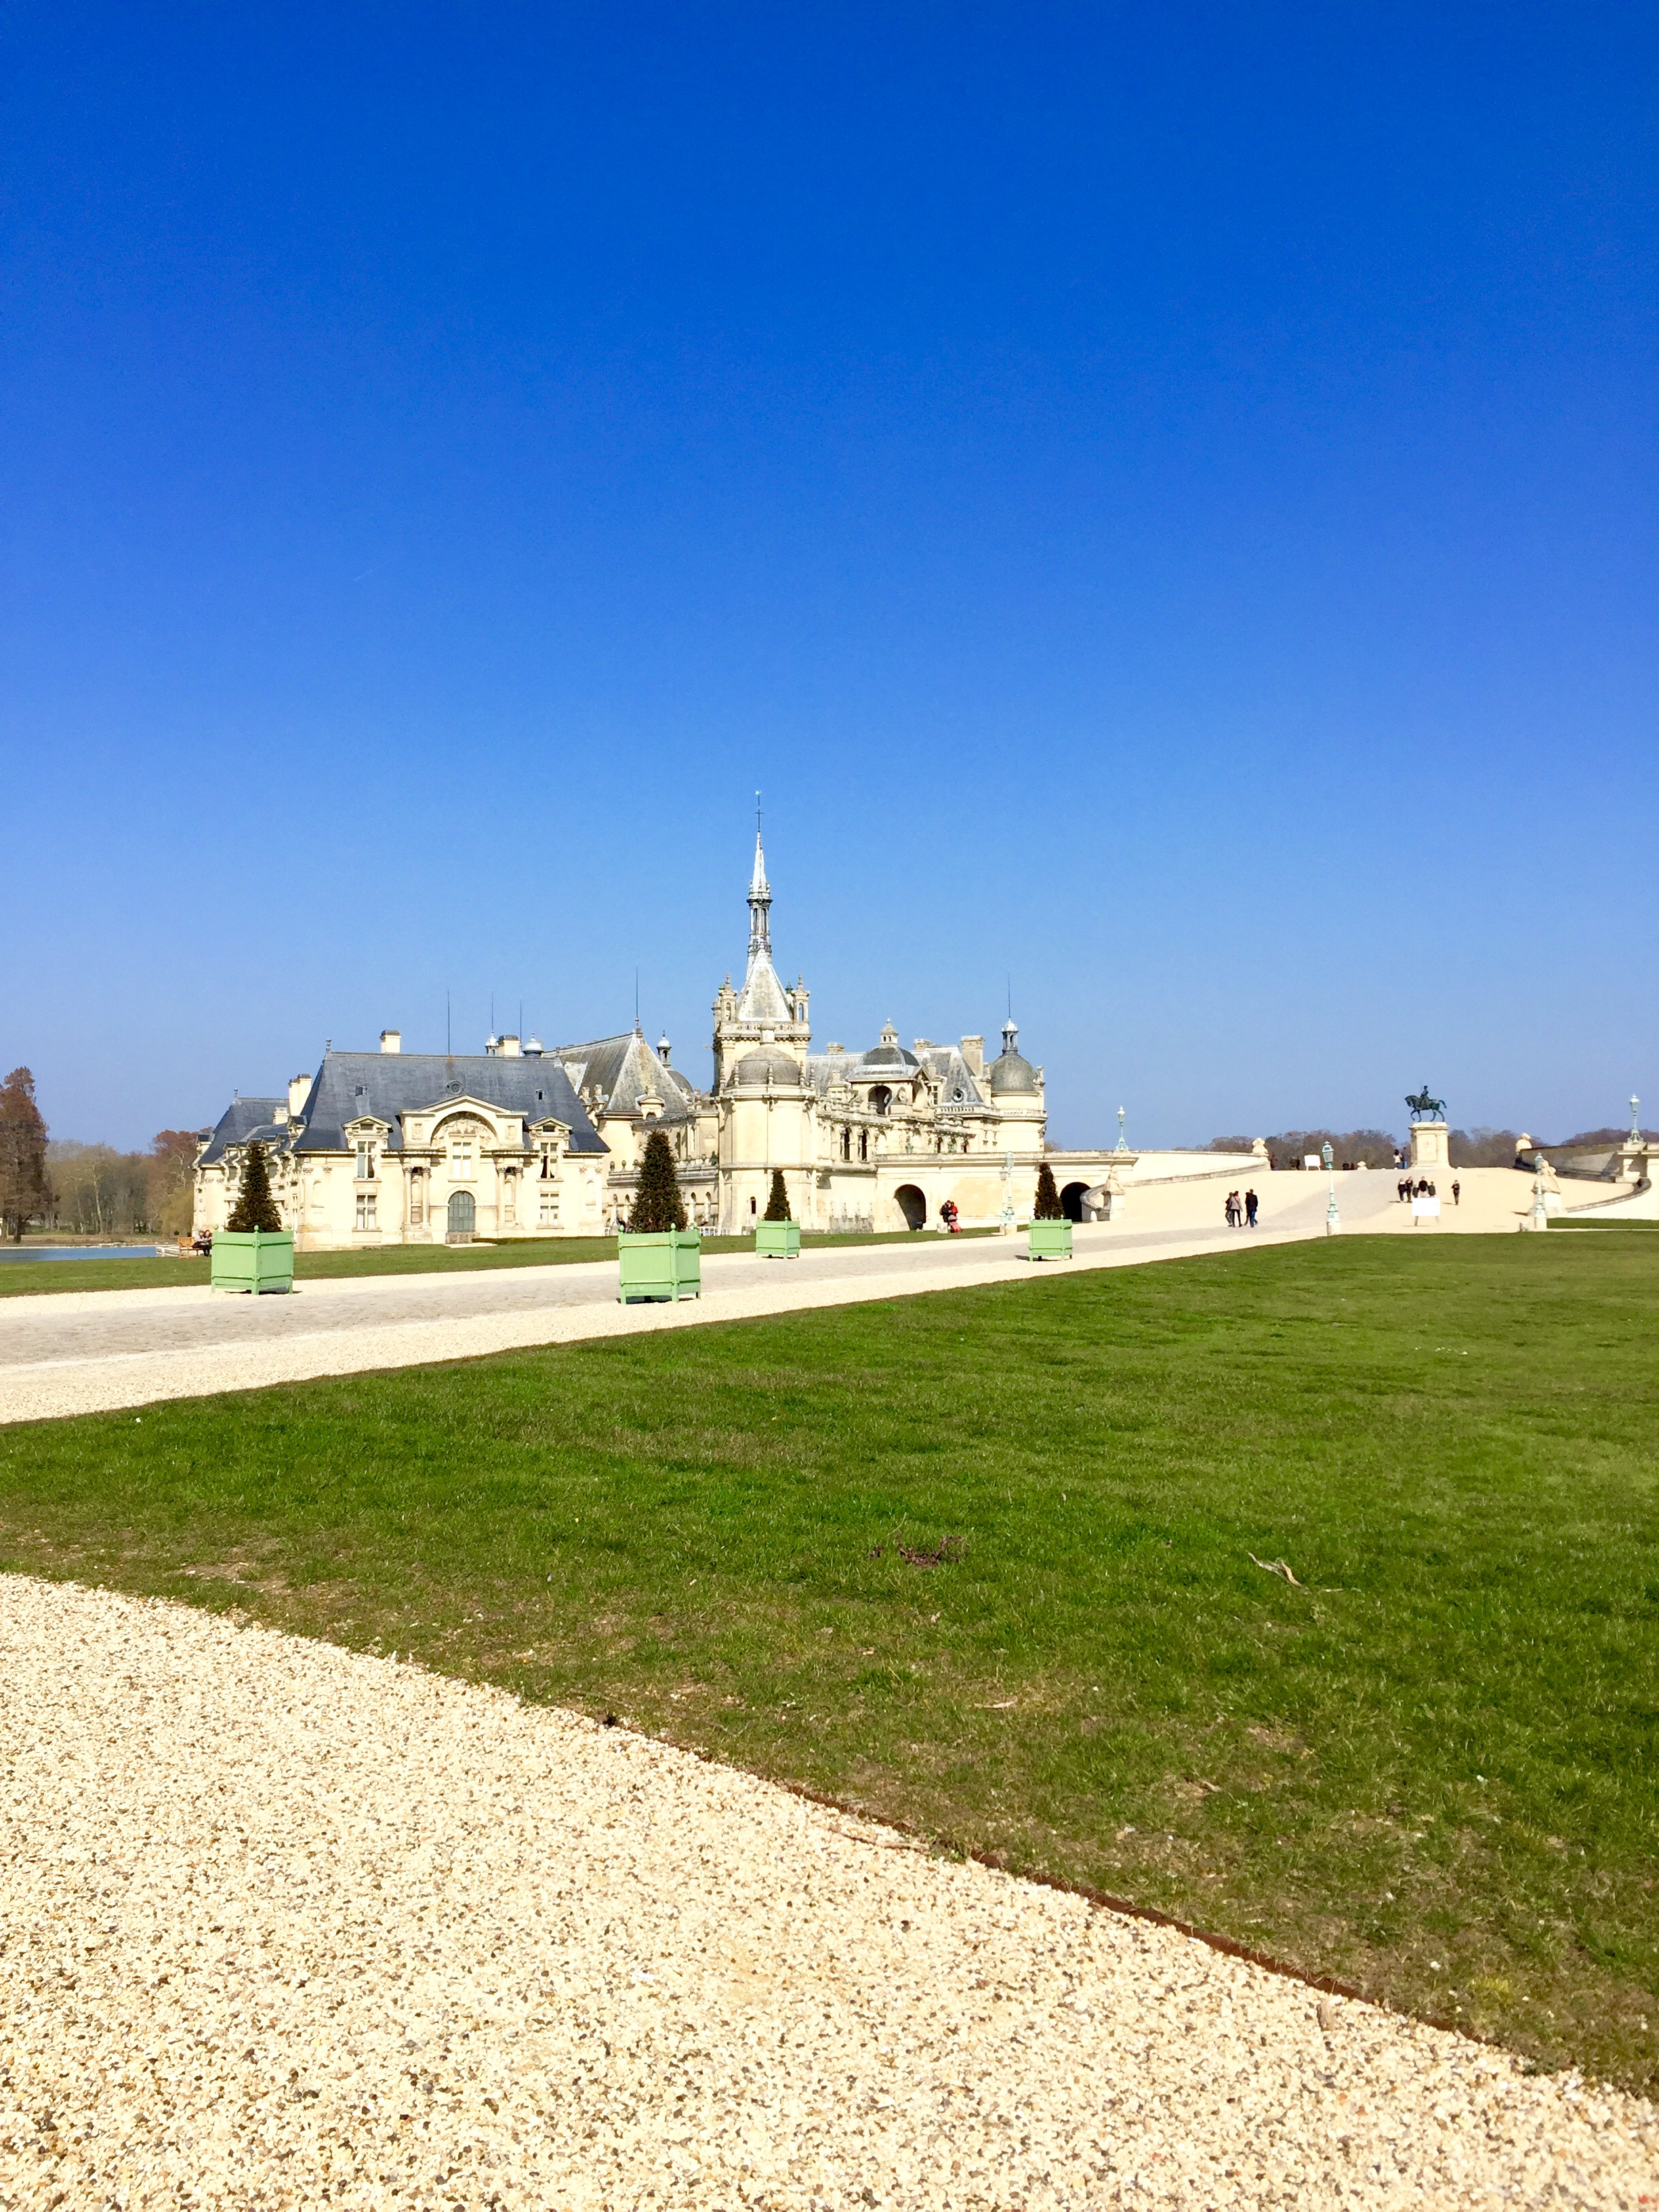 Chantilly, France - Food Fashionista